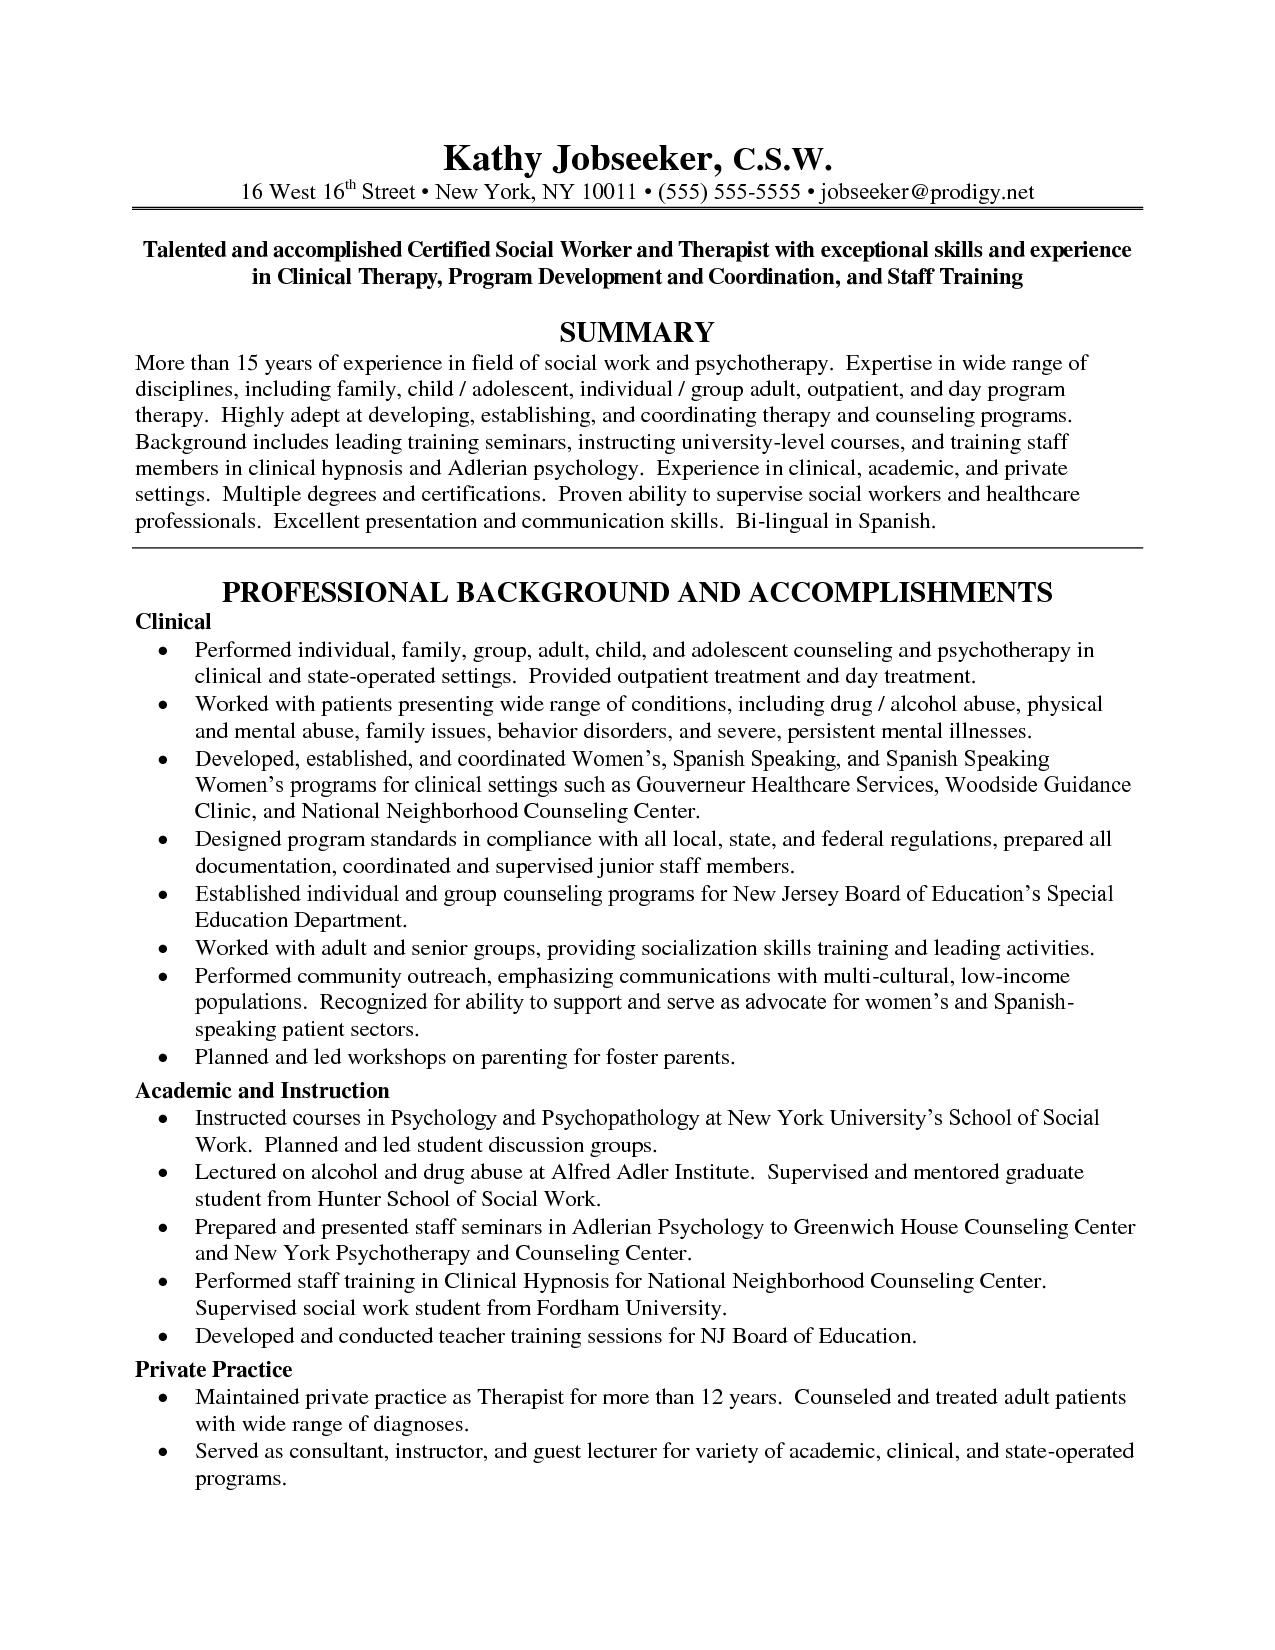 social work resume examples social work resume with license social - Sample Resume Factory Worker